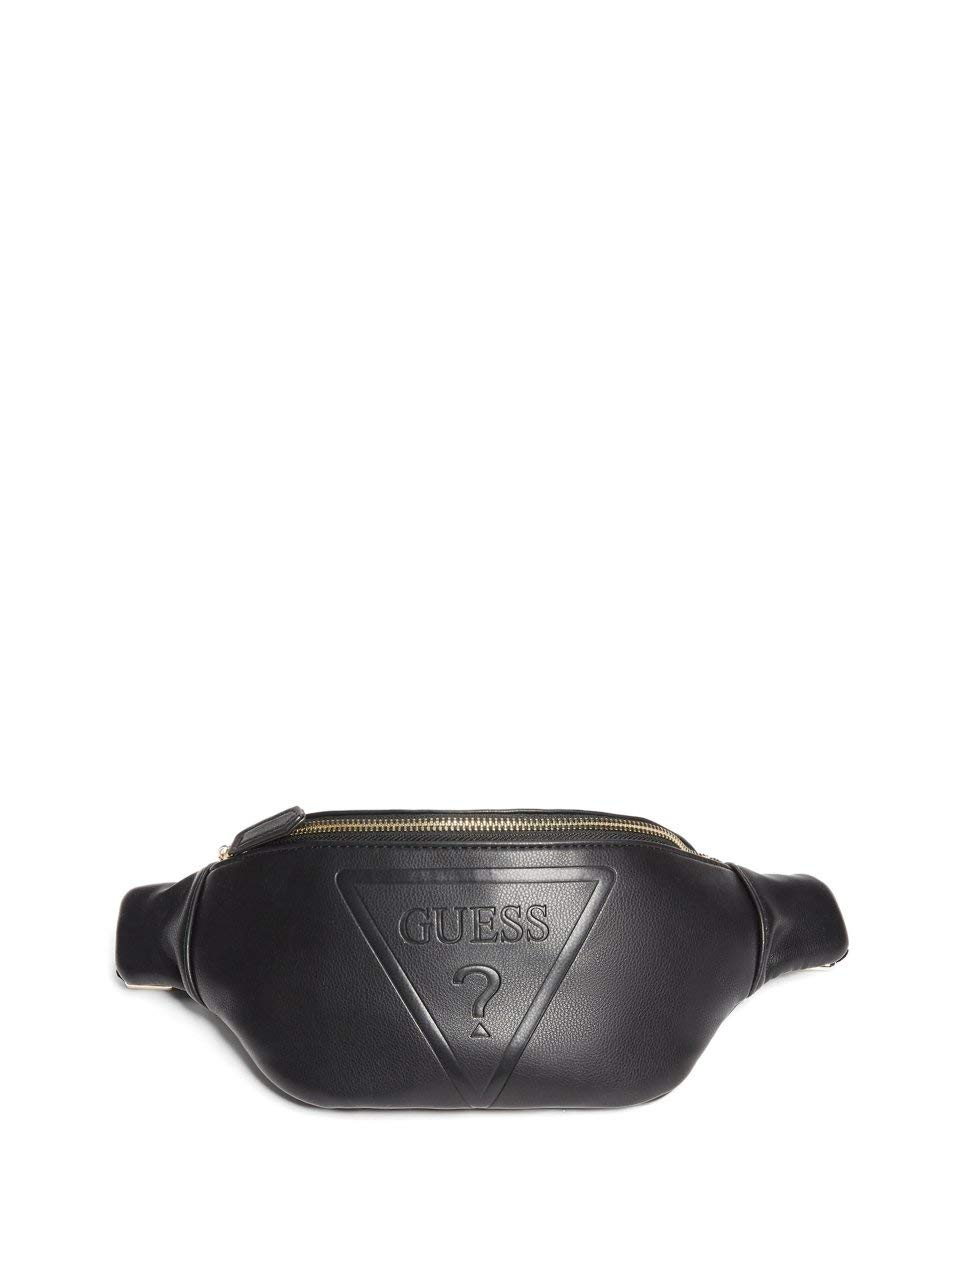 GUESS Factory Women's Gym Embossed Logo Waist Pack